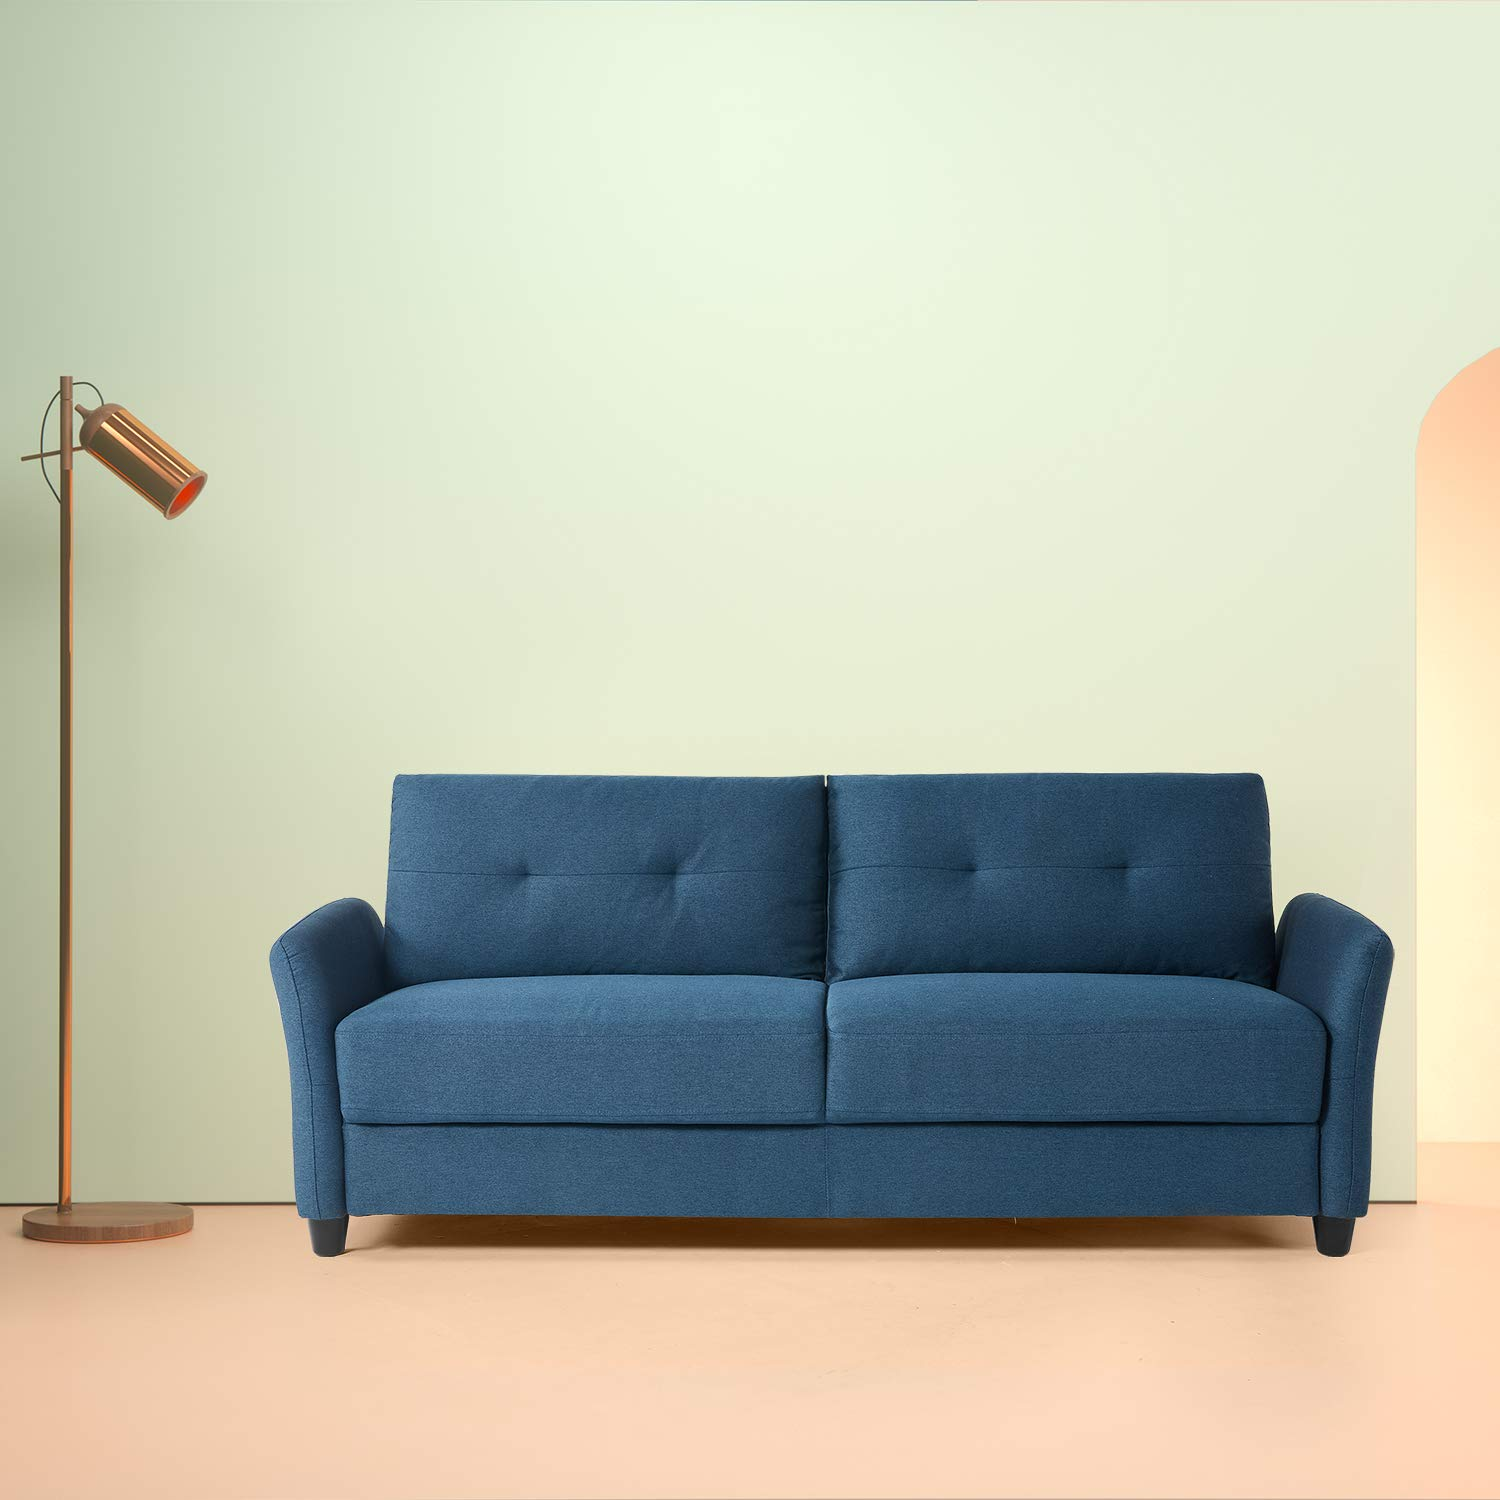 Amazing Zinus Ricardo Contemporary Upholstered 78 4 Inch Living Room Couch Lyon Blue Andrewgaddart Wooden Chair Designs For Living Room Andrewgaddartcom